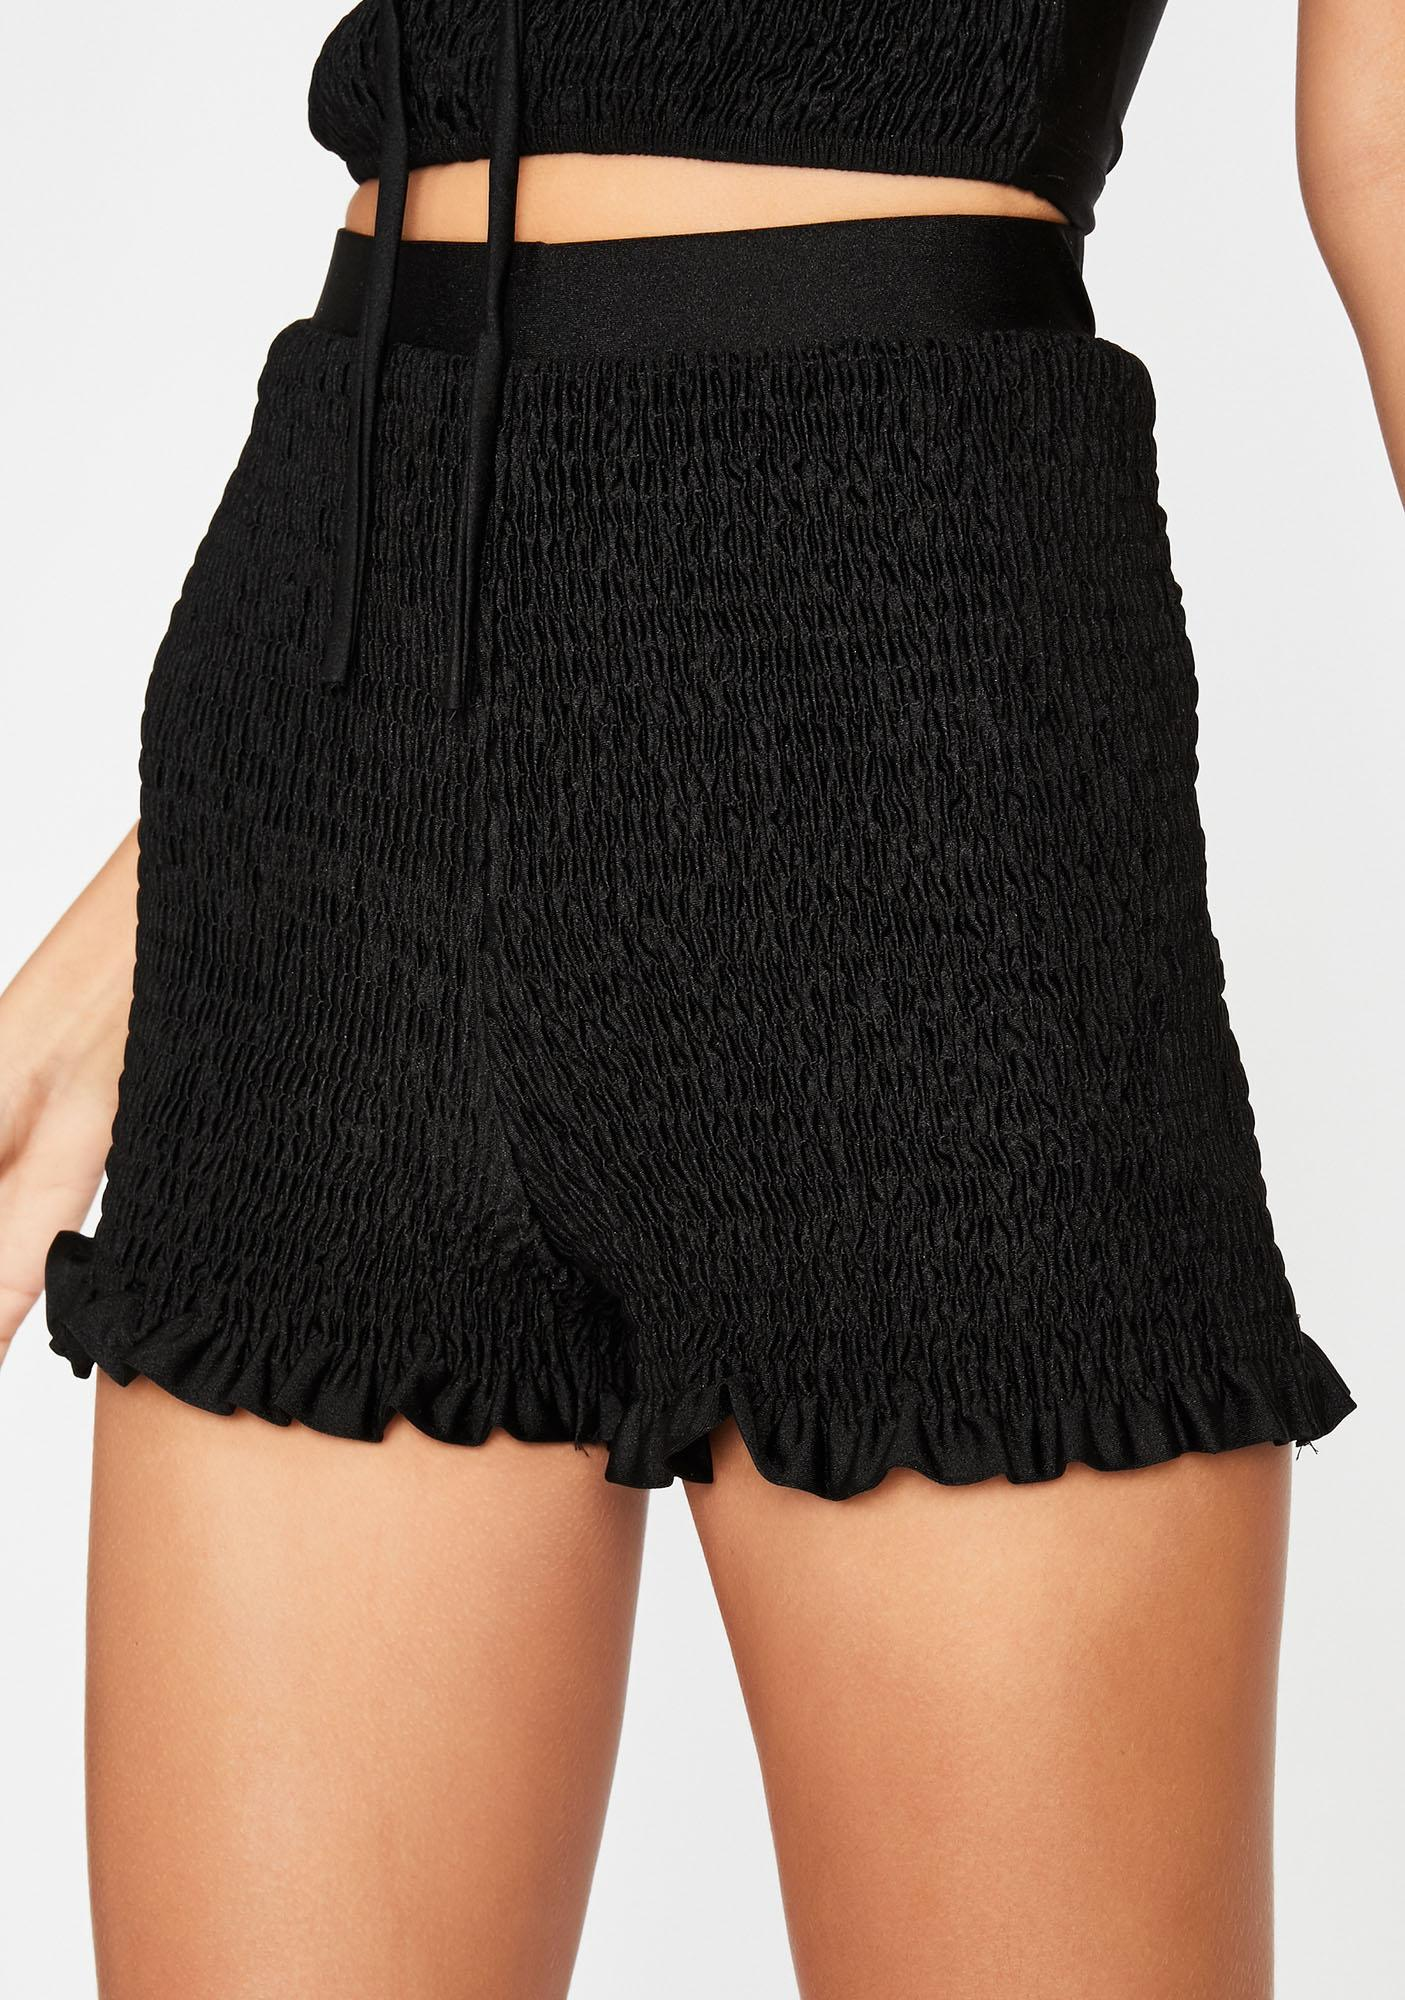 Risque Resolution Smocked Shorts